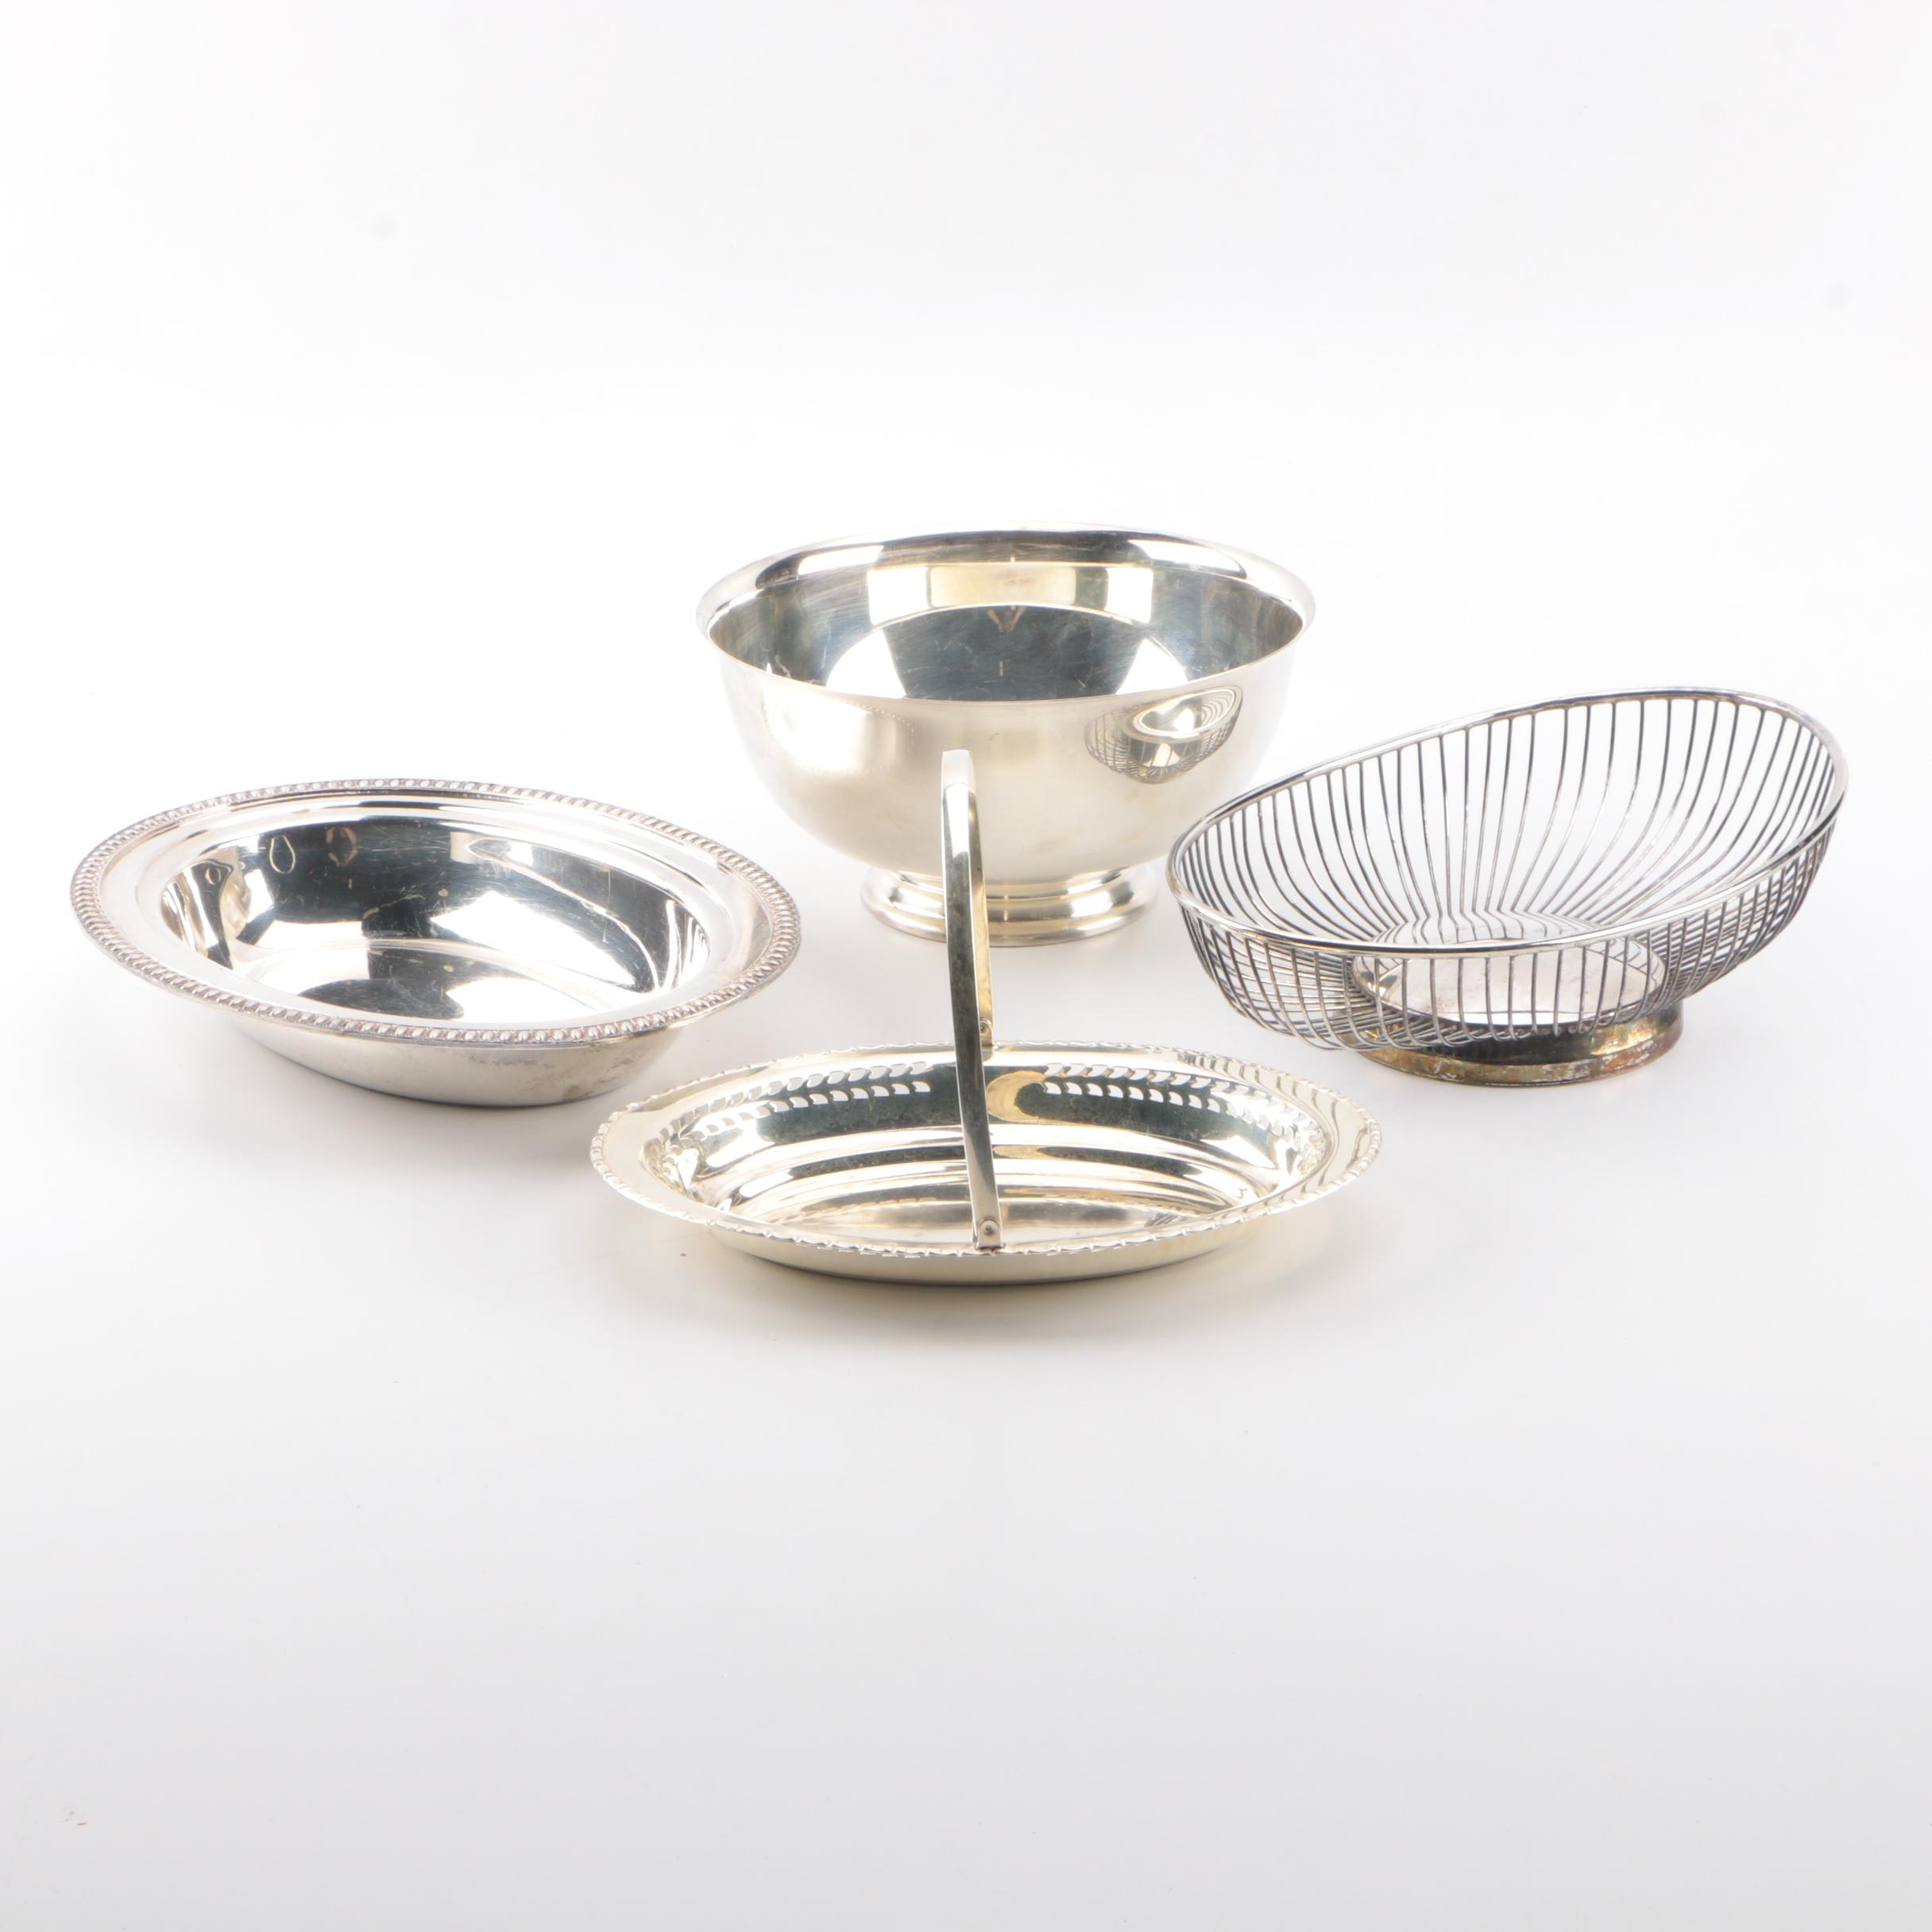 Assortment of Silver Plated Serveware